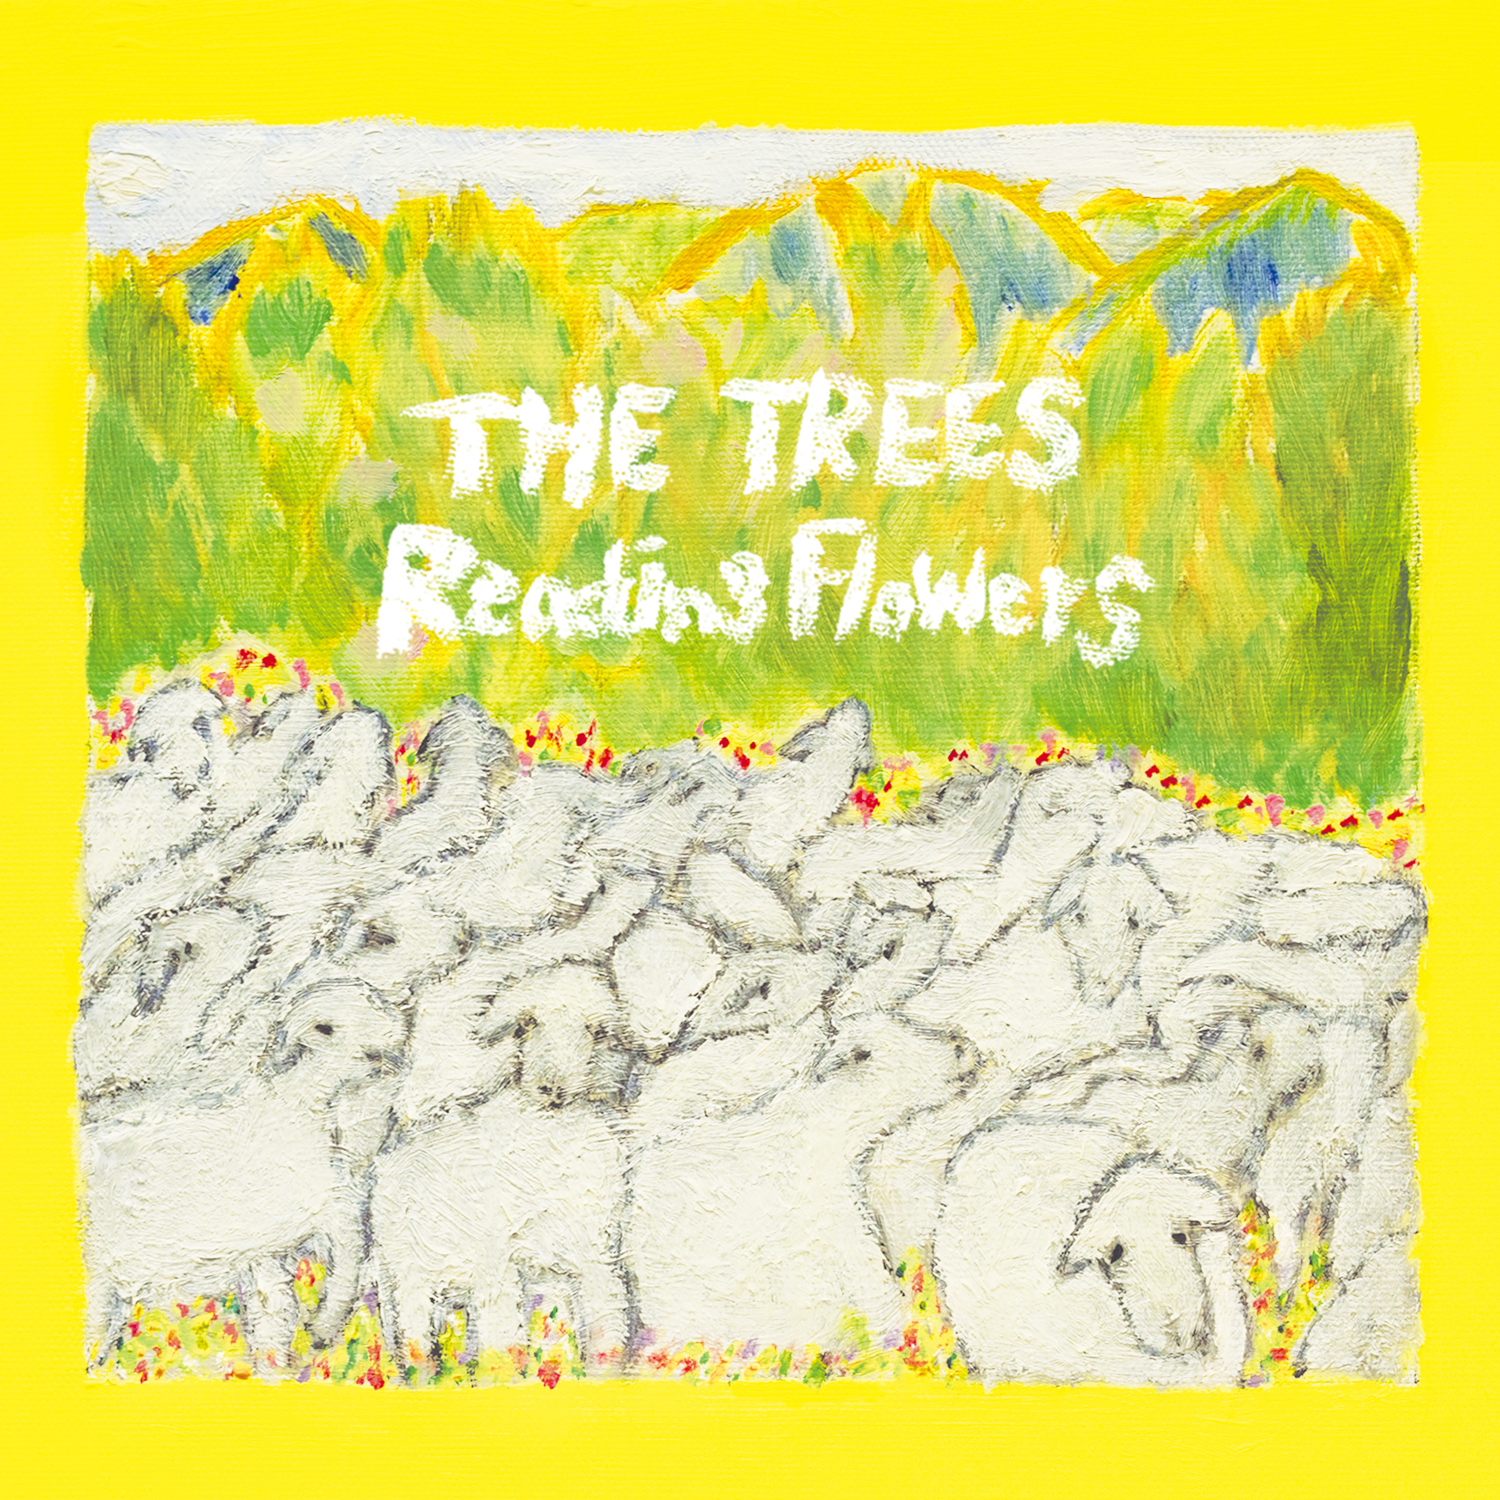 THE TREES『Reading Flowers』